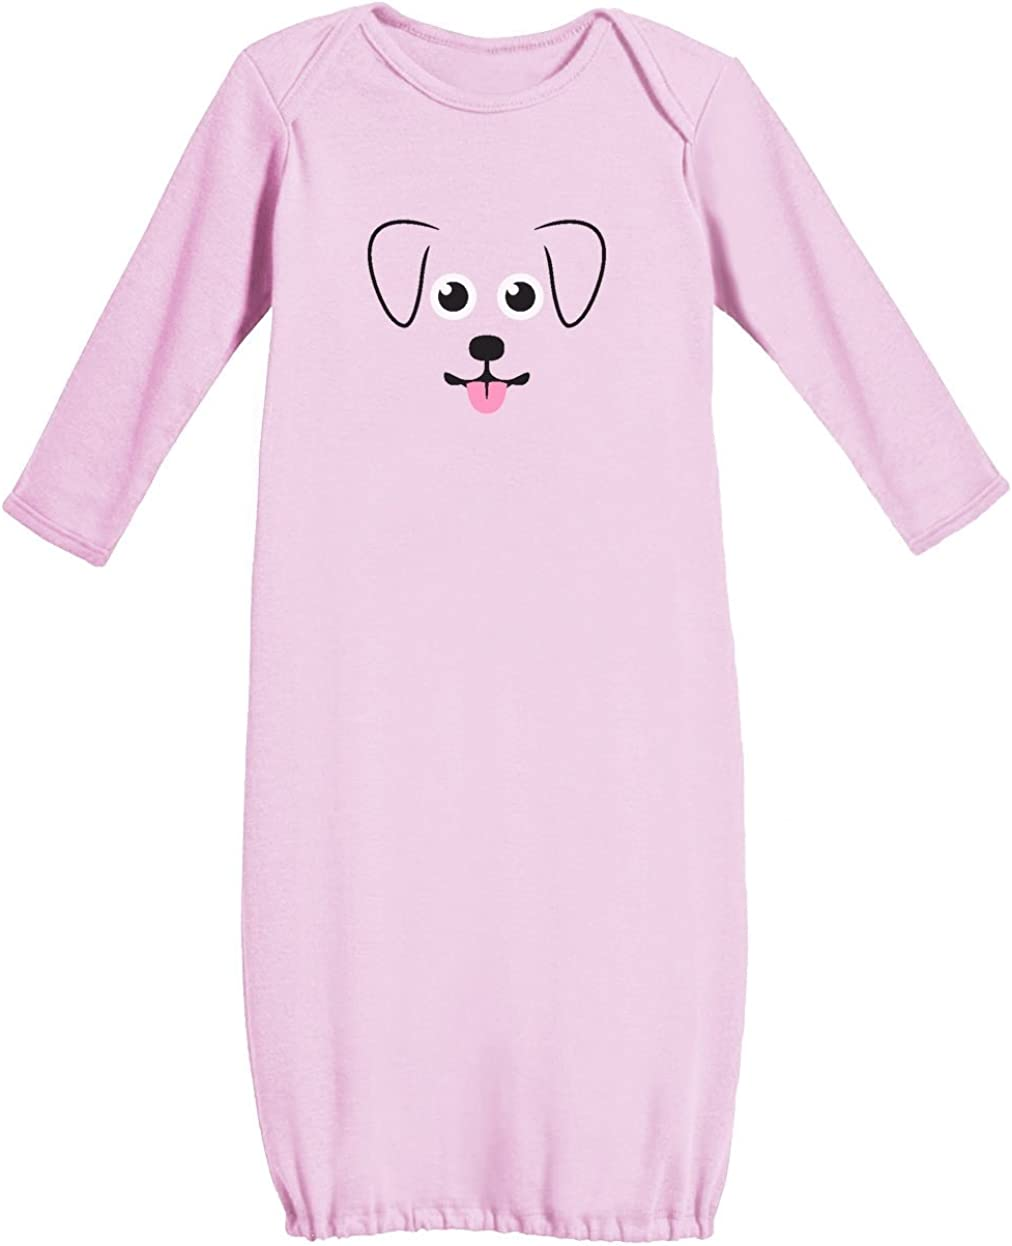 Cute Puppy Face New Born Funny Baby Long Sleeve Gown Newborn Pink My Little Pup TeeStars